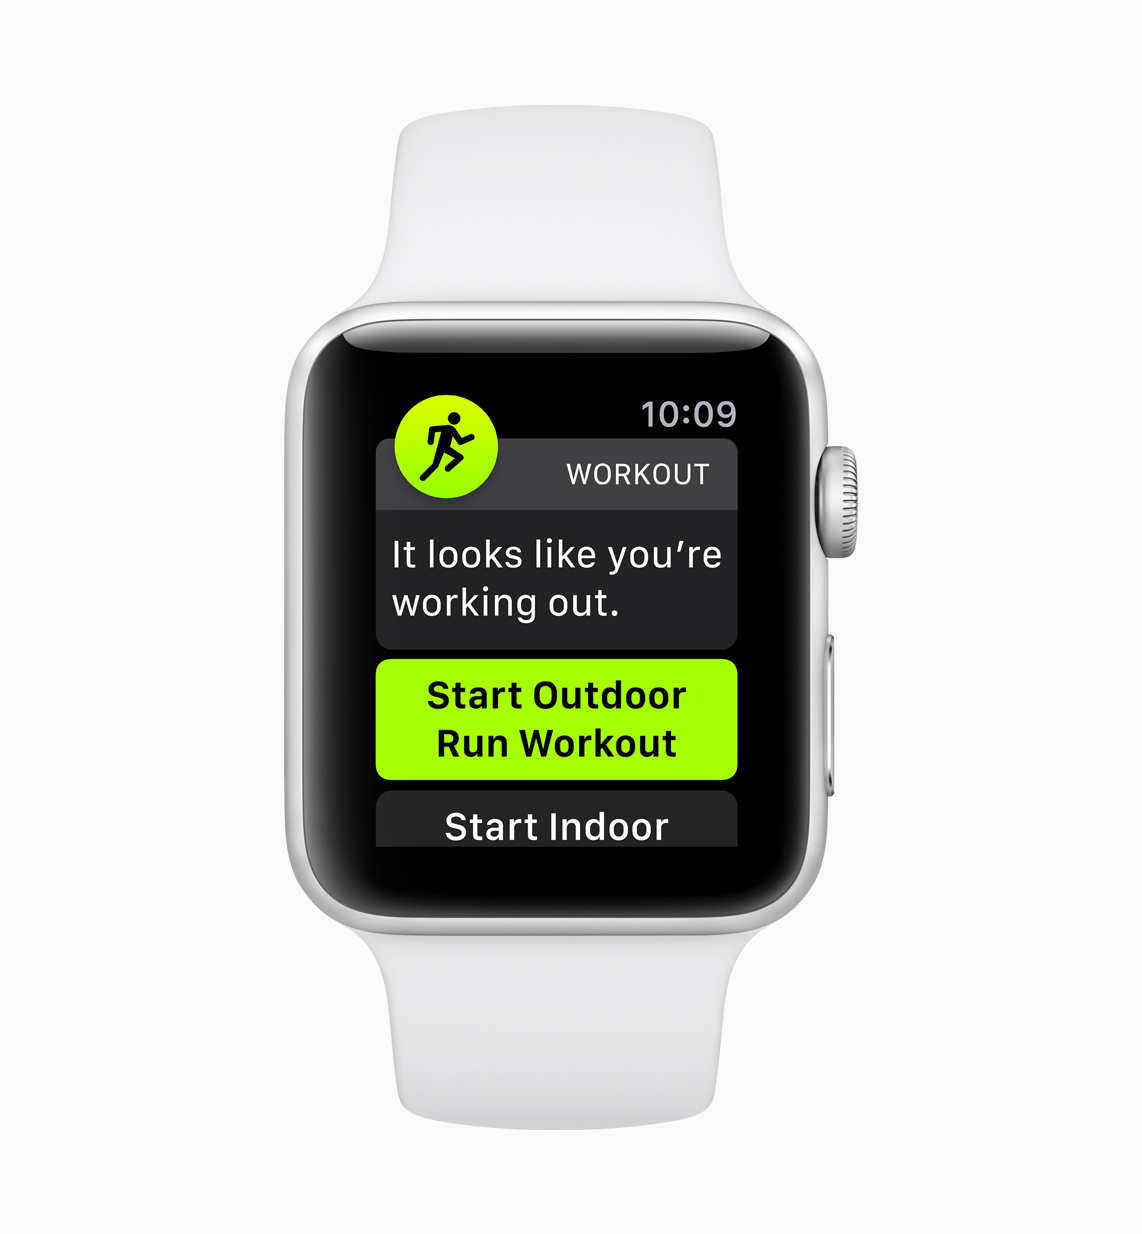 Apple-watchOS_5-Workout-Detections-01-screen-06042018